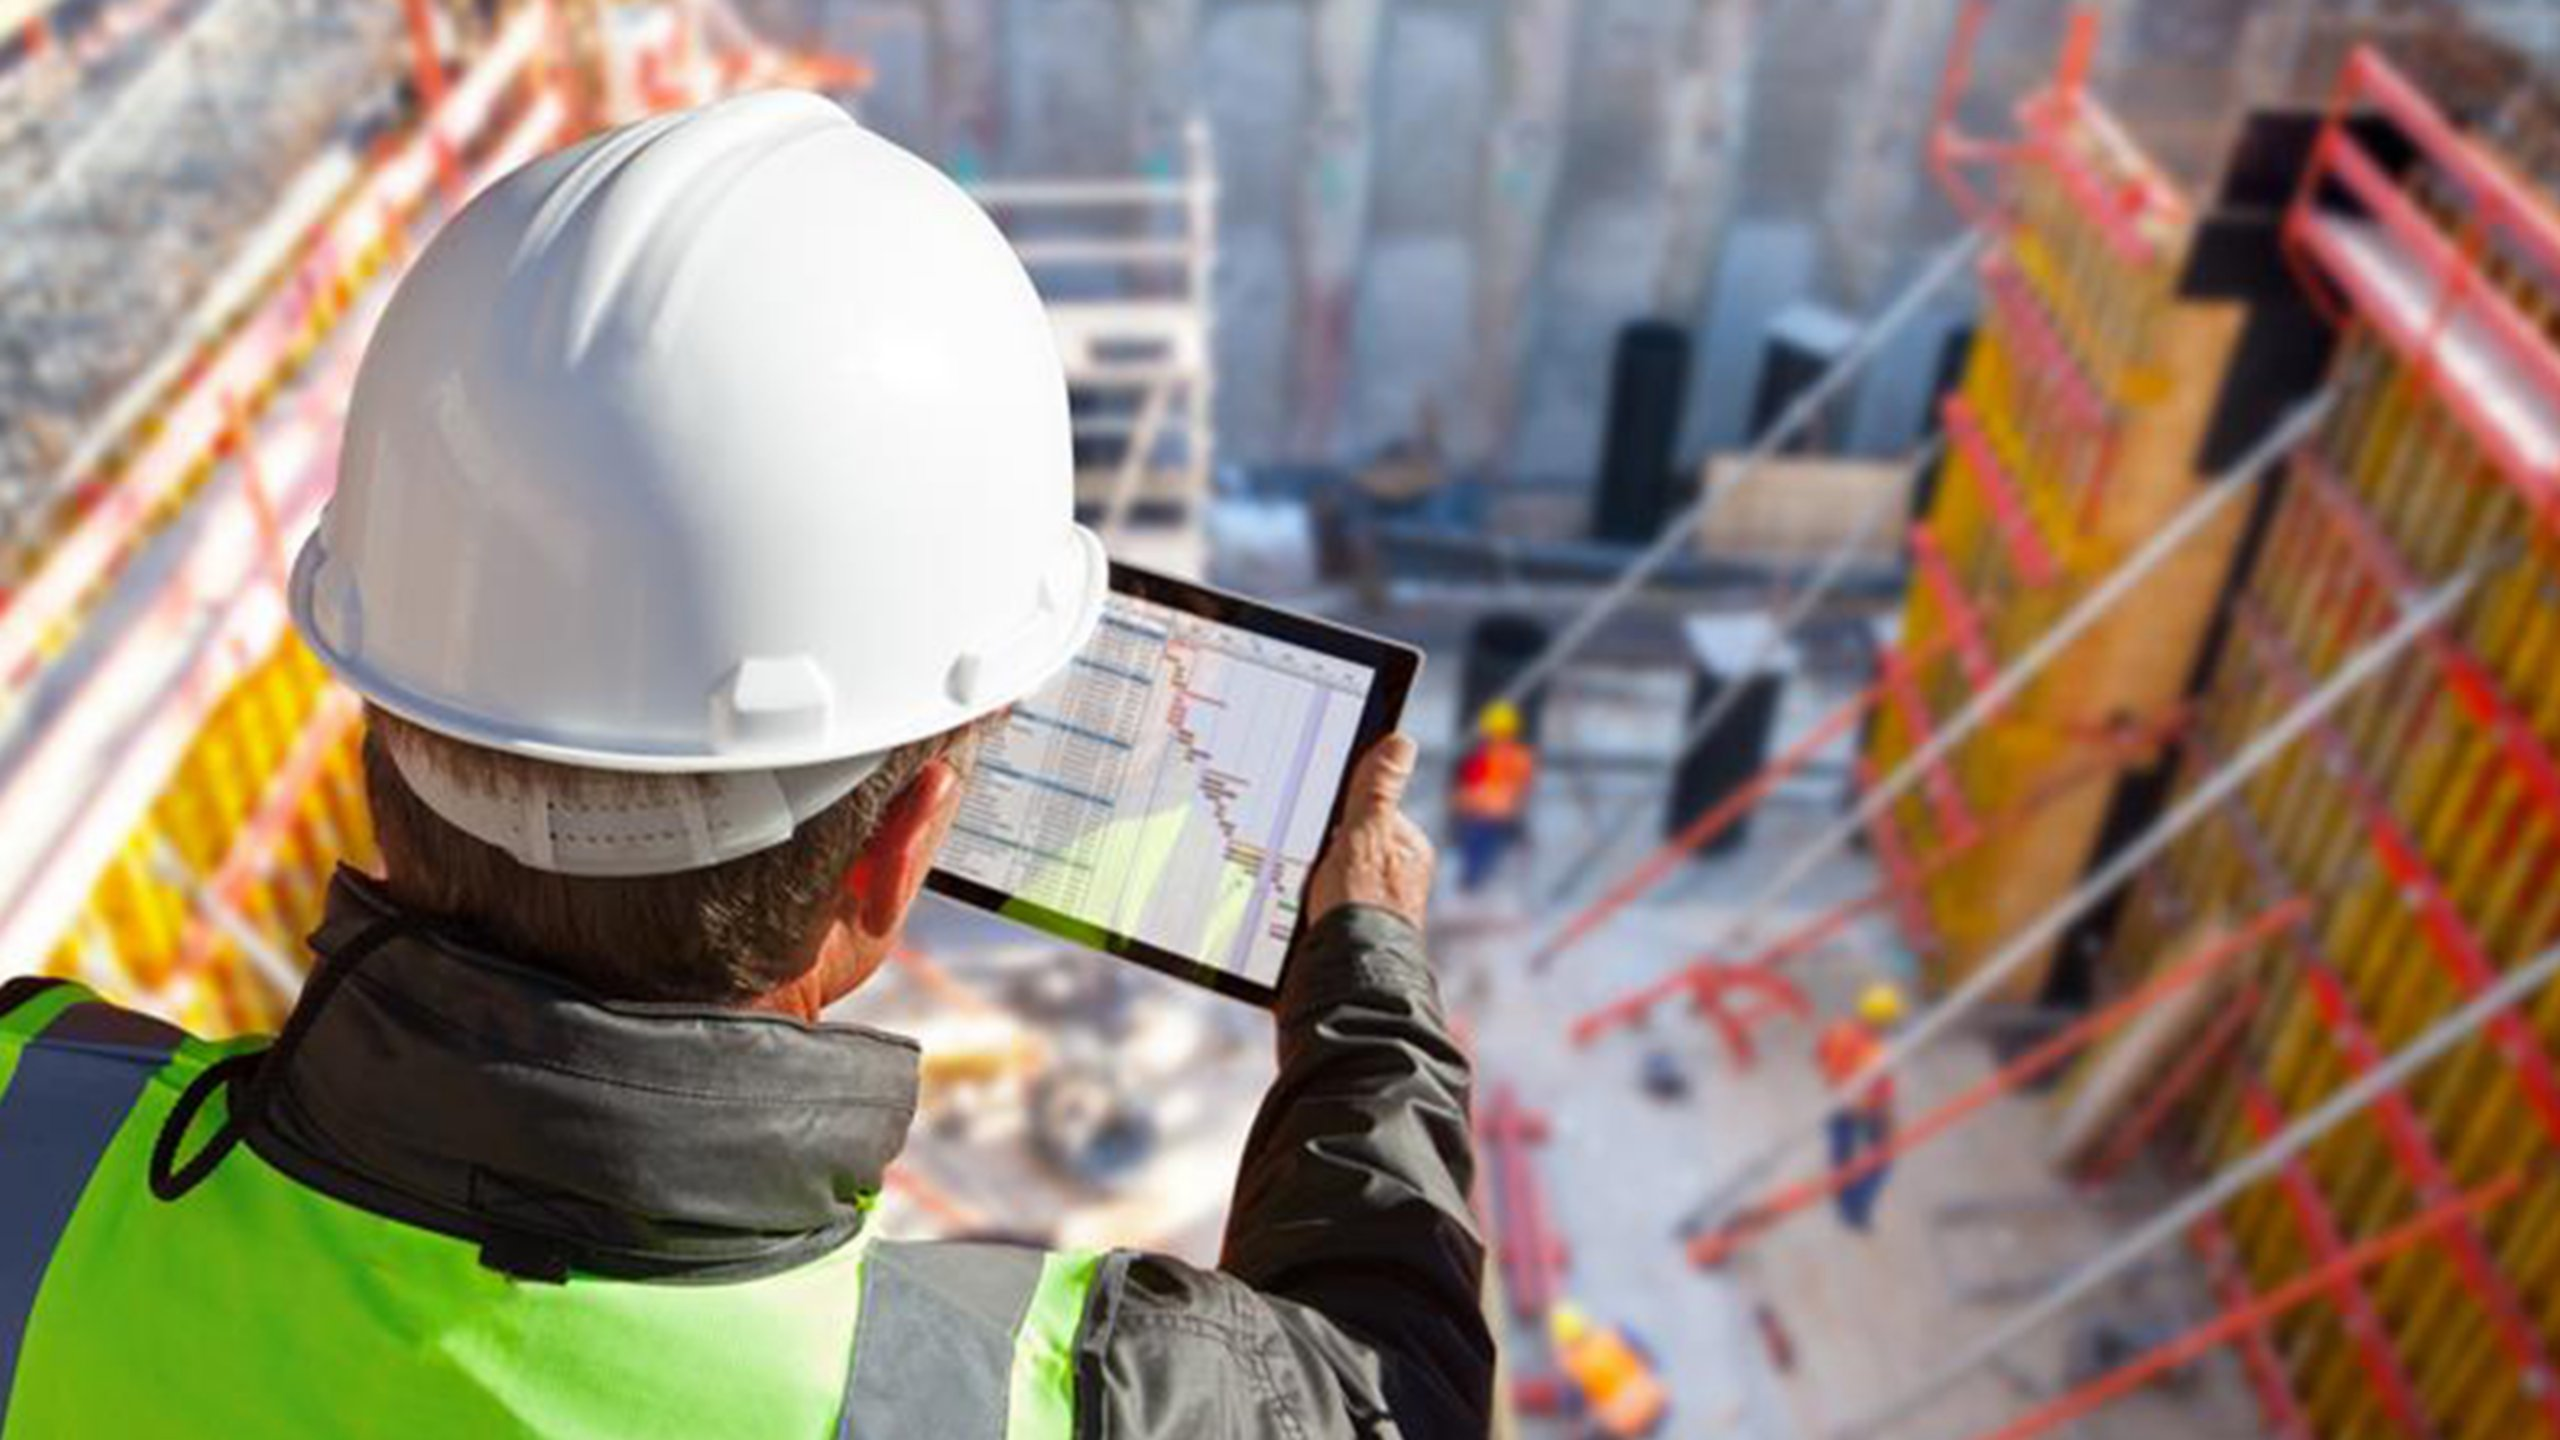 Man wearing a white hard hat holding a touch screen next to a construction site